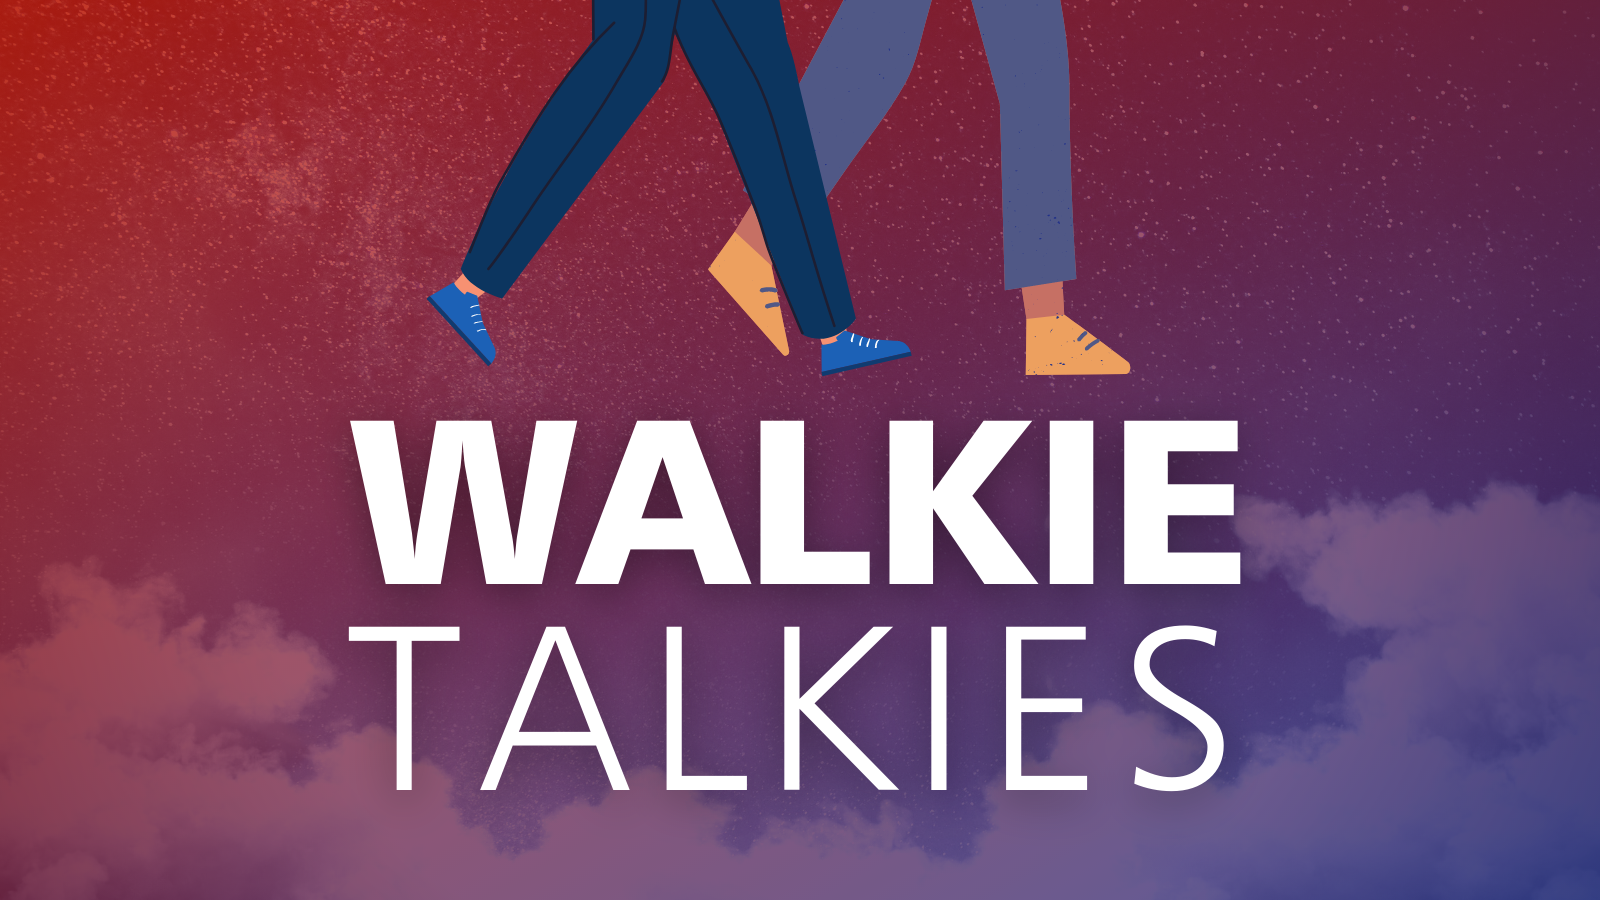 Walkie Talkies- a new podcast!